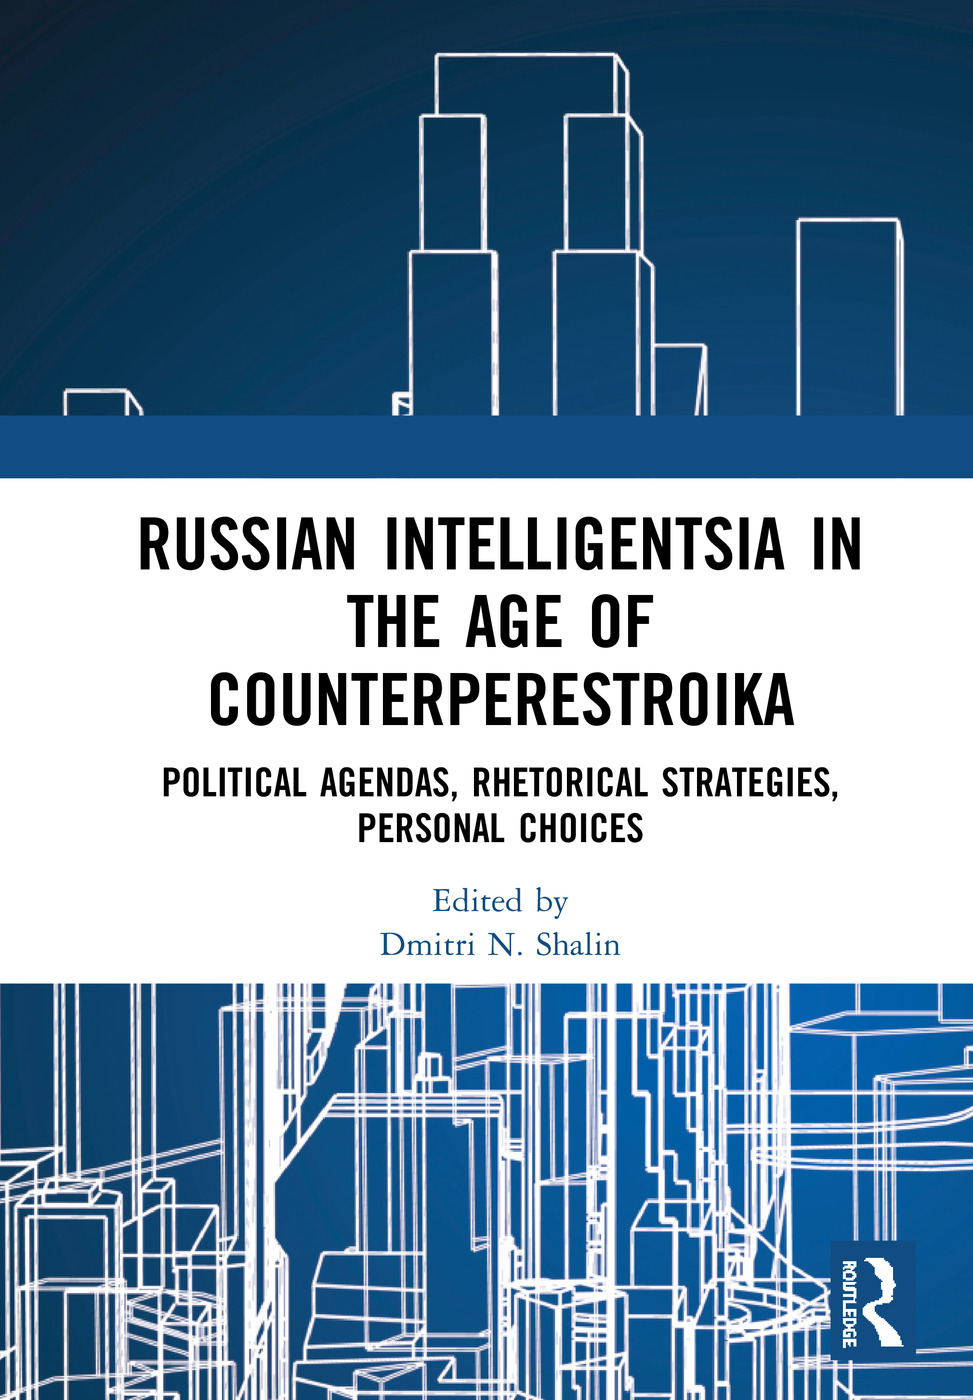 Russian Intelligentsia in the Age of Counterperestroika: Political Agendas, Rhetorical Strategies, Personal Choices book cover